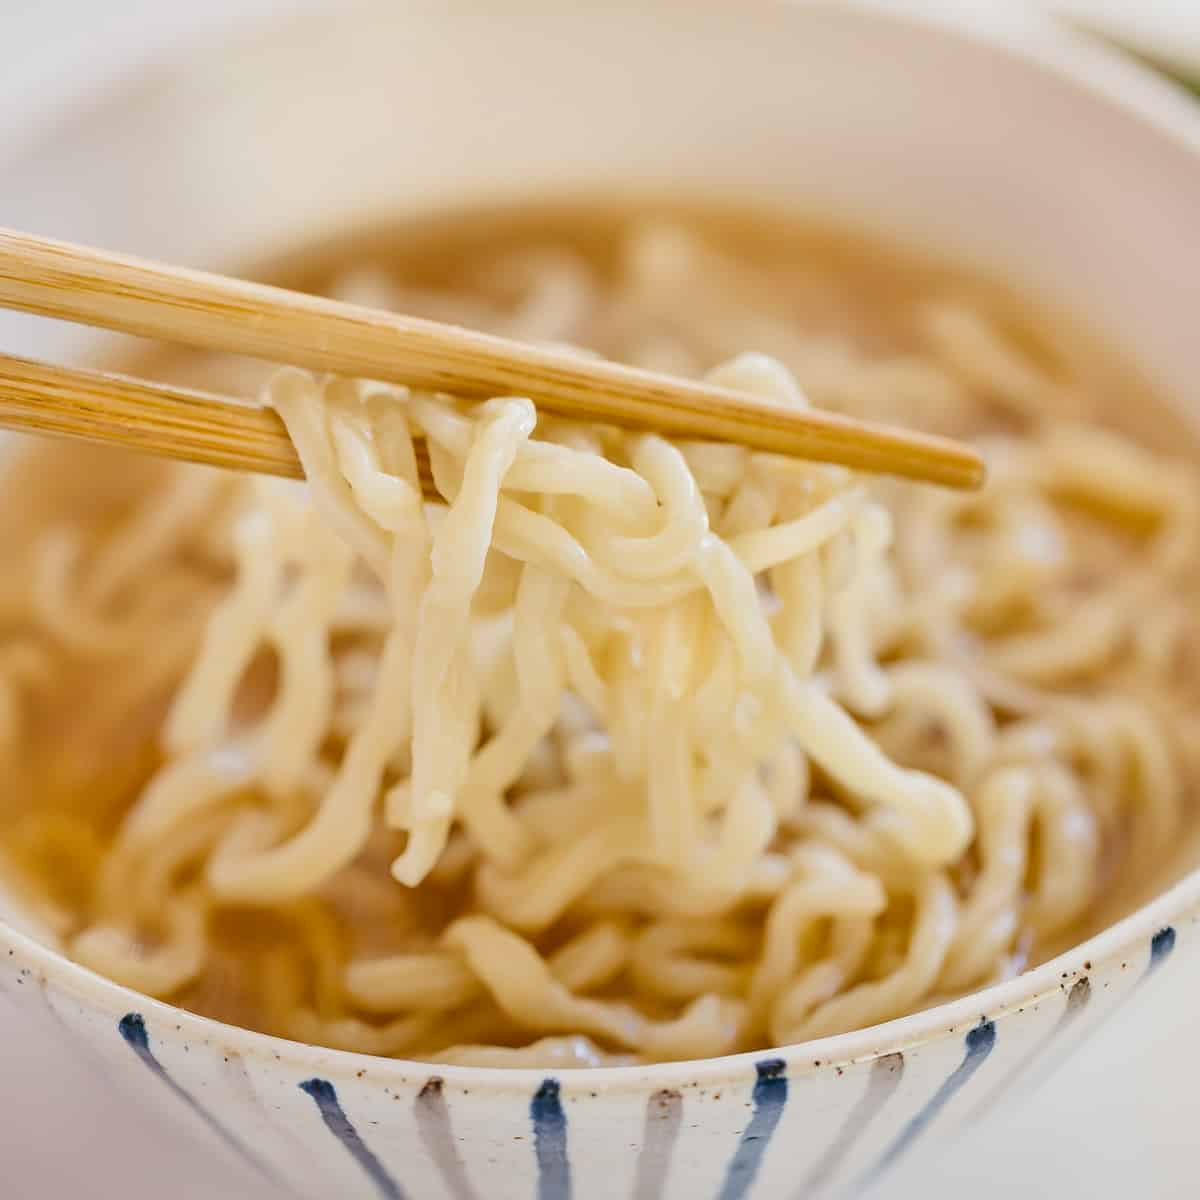 homemade ramen noodles cooked and served with ramen broth